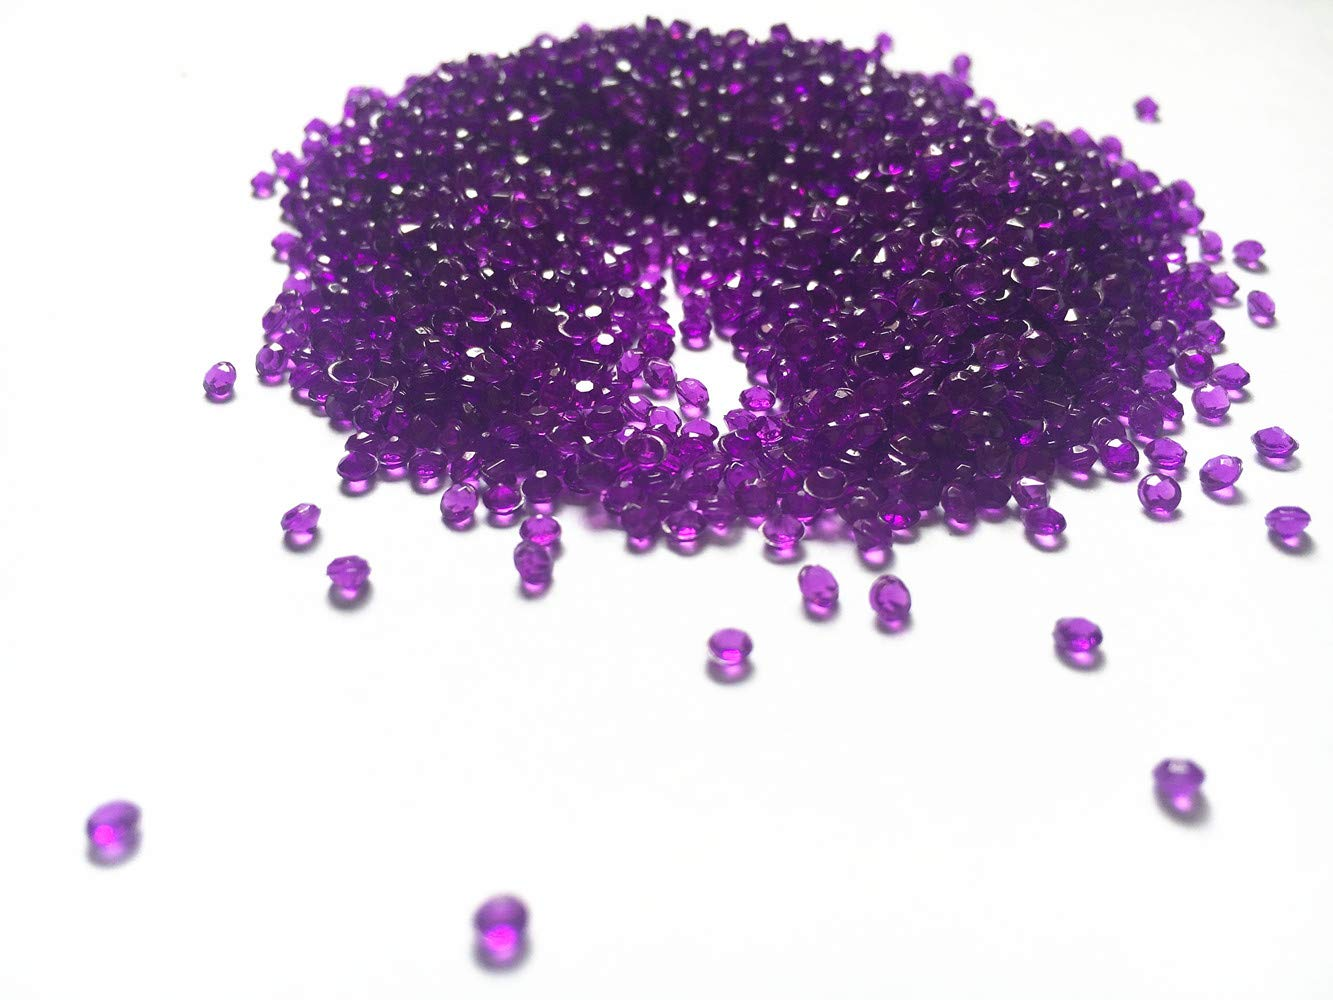 Table Scatters 2.5mm 10000pcs Champagne Liying shop Acrylic Diamonds Faux Round Crystals Treasure Gems for Table Confetti Arts /& Crafts Vase Fillers Wedding Decoration